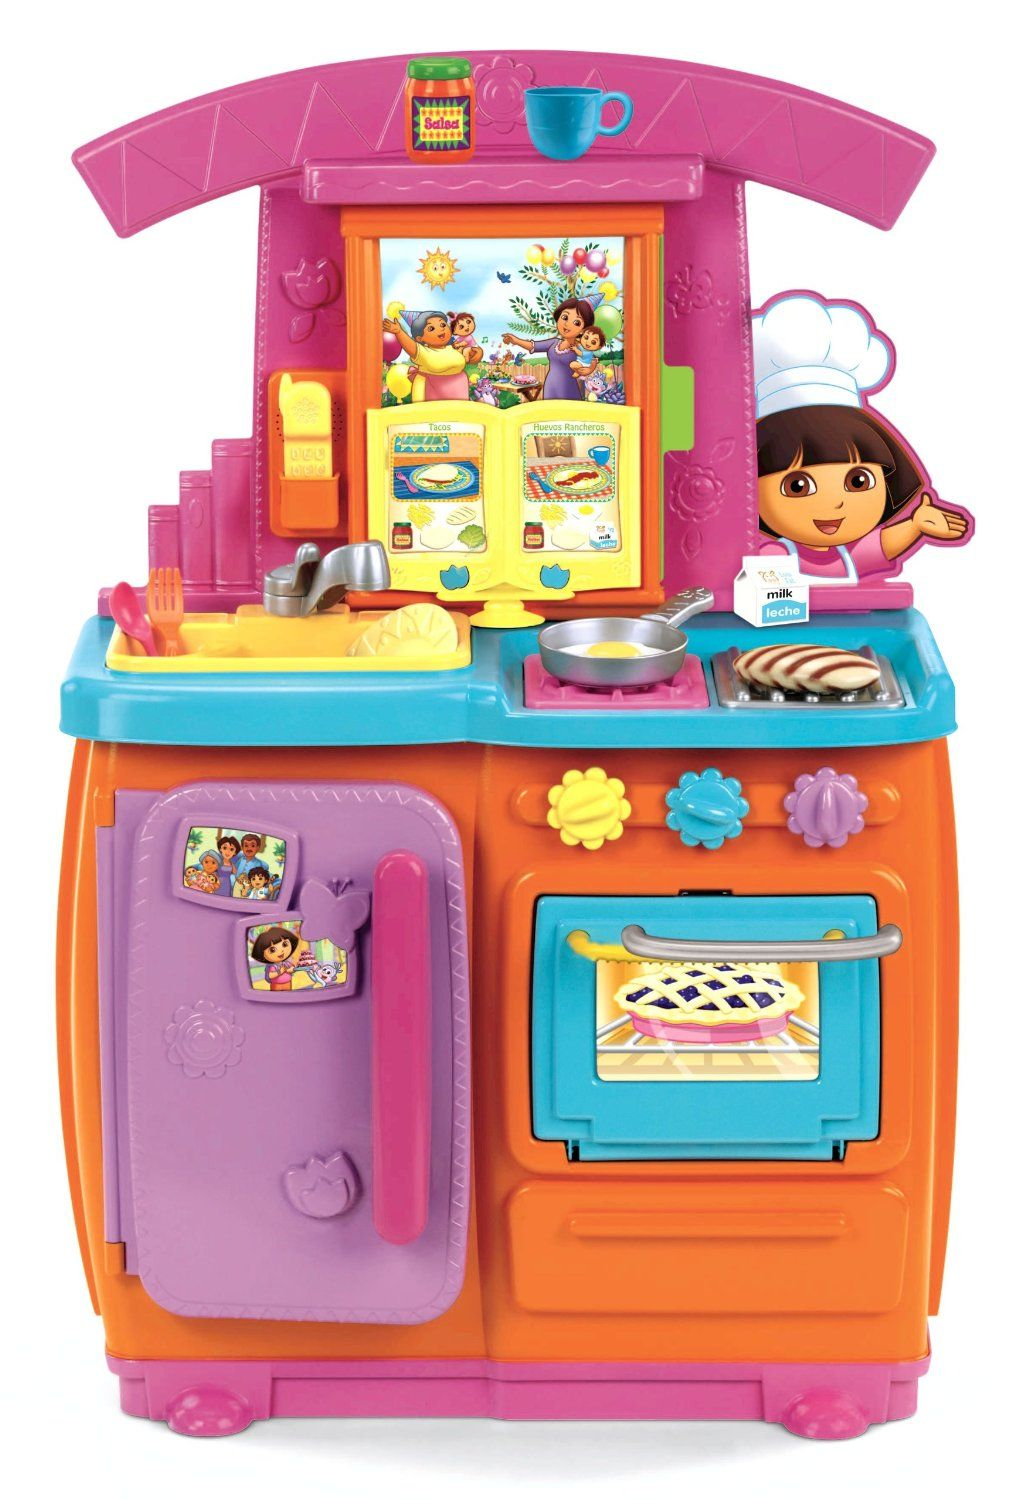 64ff7dfc6 Fisher Price Dora Kitchen Playset